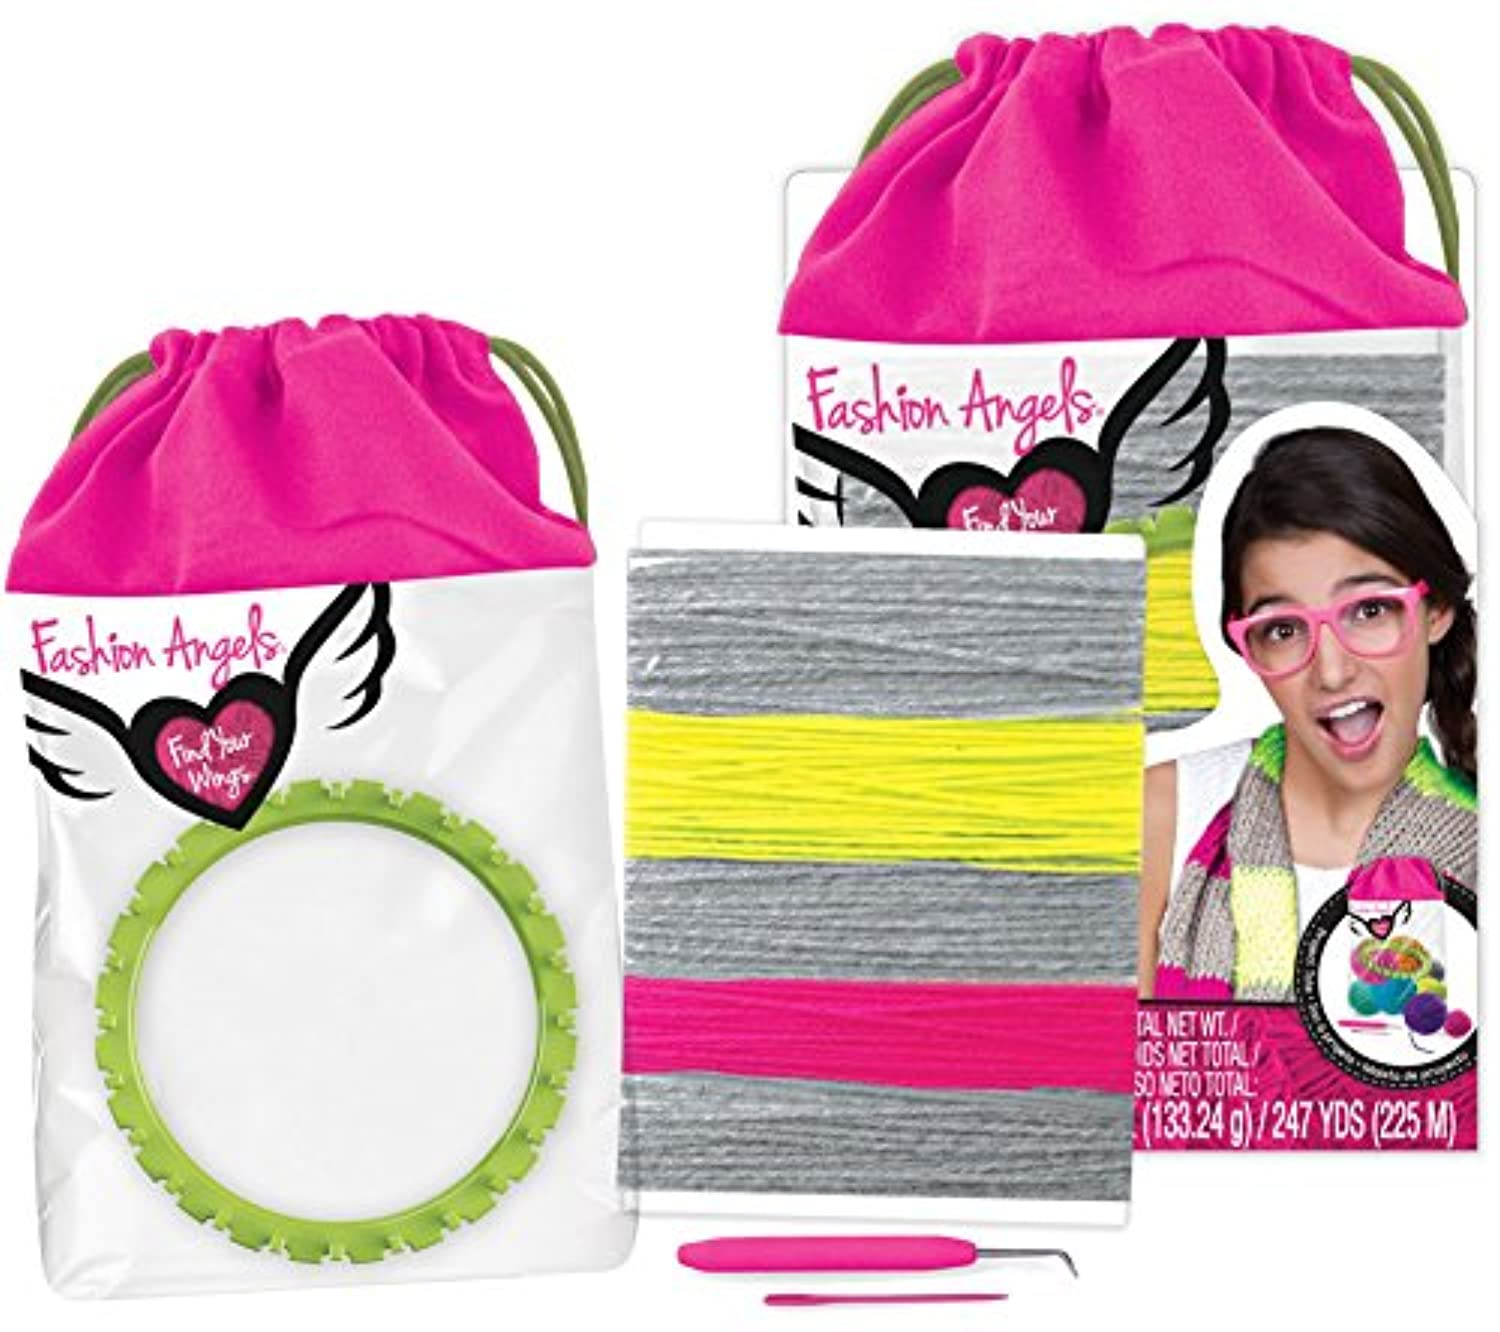 Darn Yarn Infinity Scarf Kit - Fashion Angels Find Your Wings Series by Fashion Angels